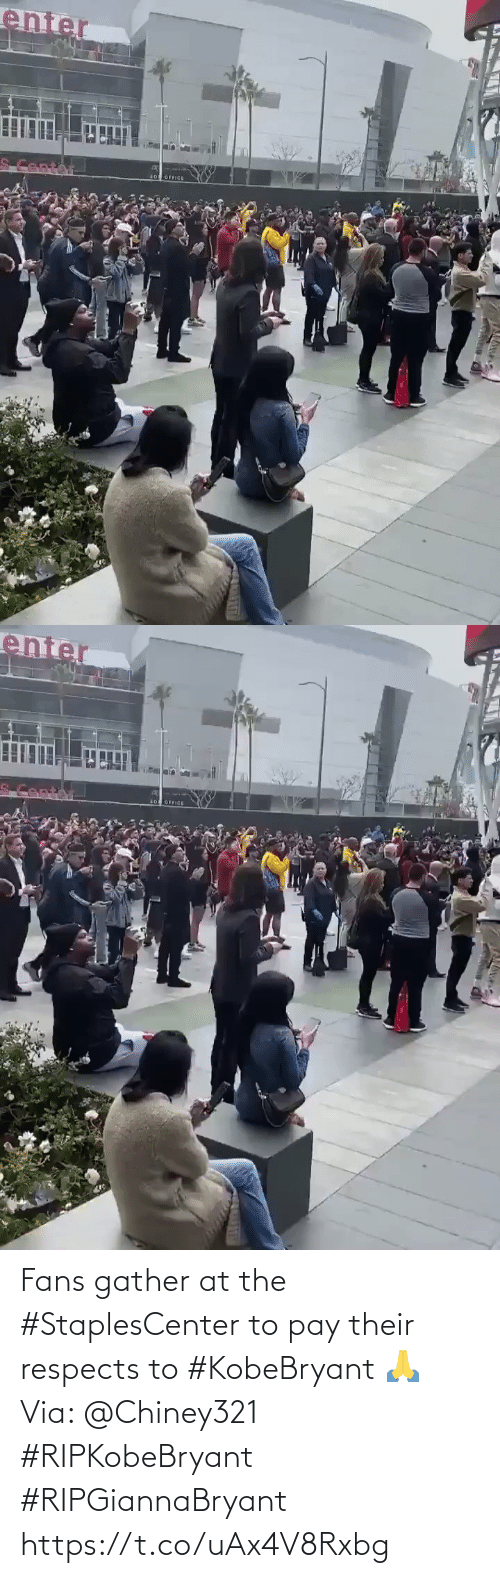 Respects: Fans gather at the #StaplesCenter to pay their respects to #KobeBryant 🙏 Via: @Chiney321 #RIPKobeBryant #RIPGiannaBryant https://t.co/uAx4V8Rxbg